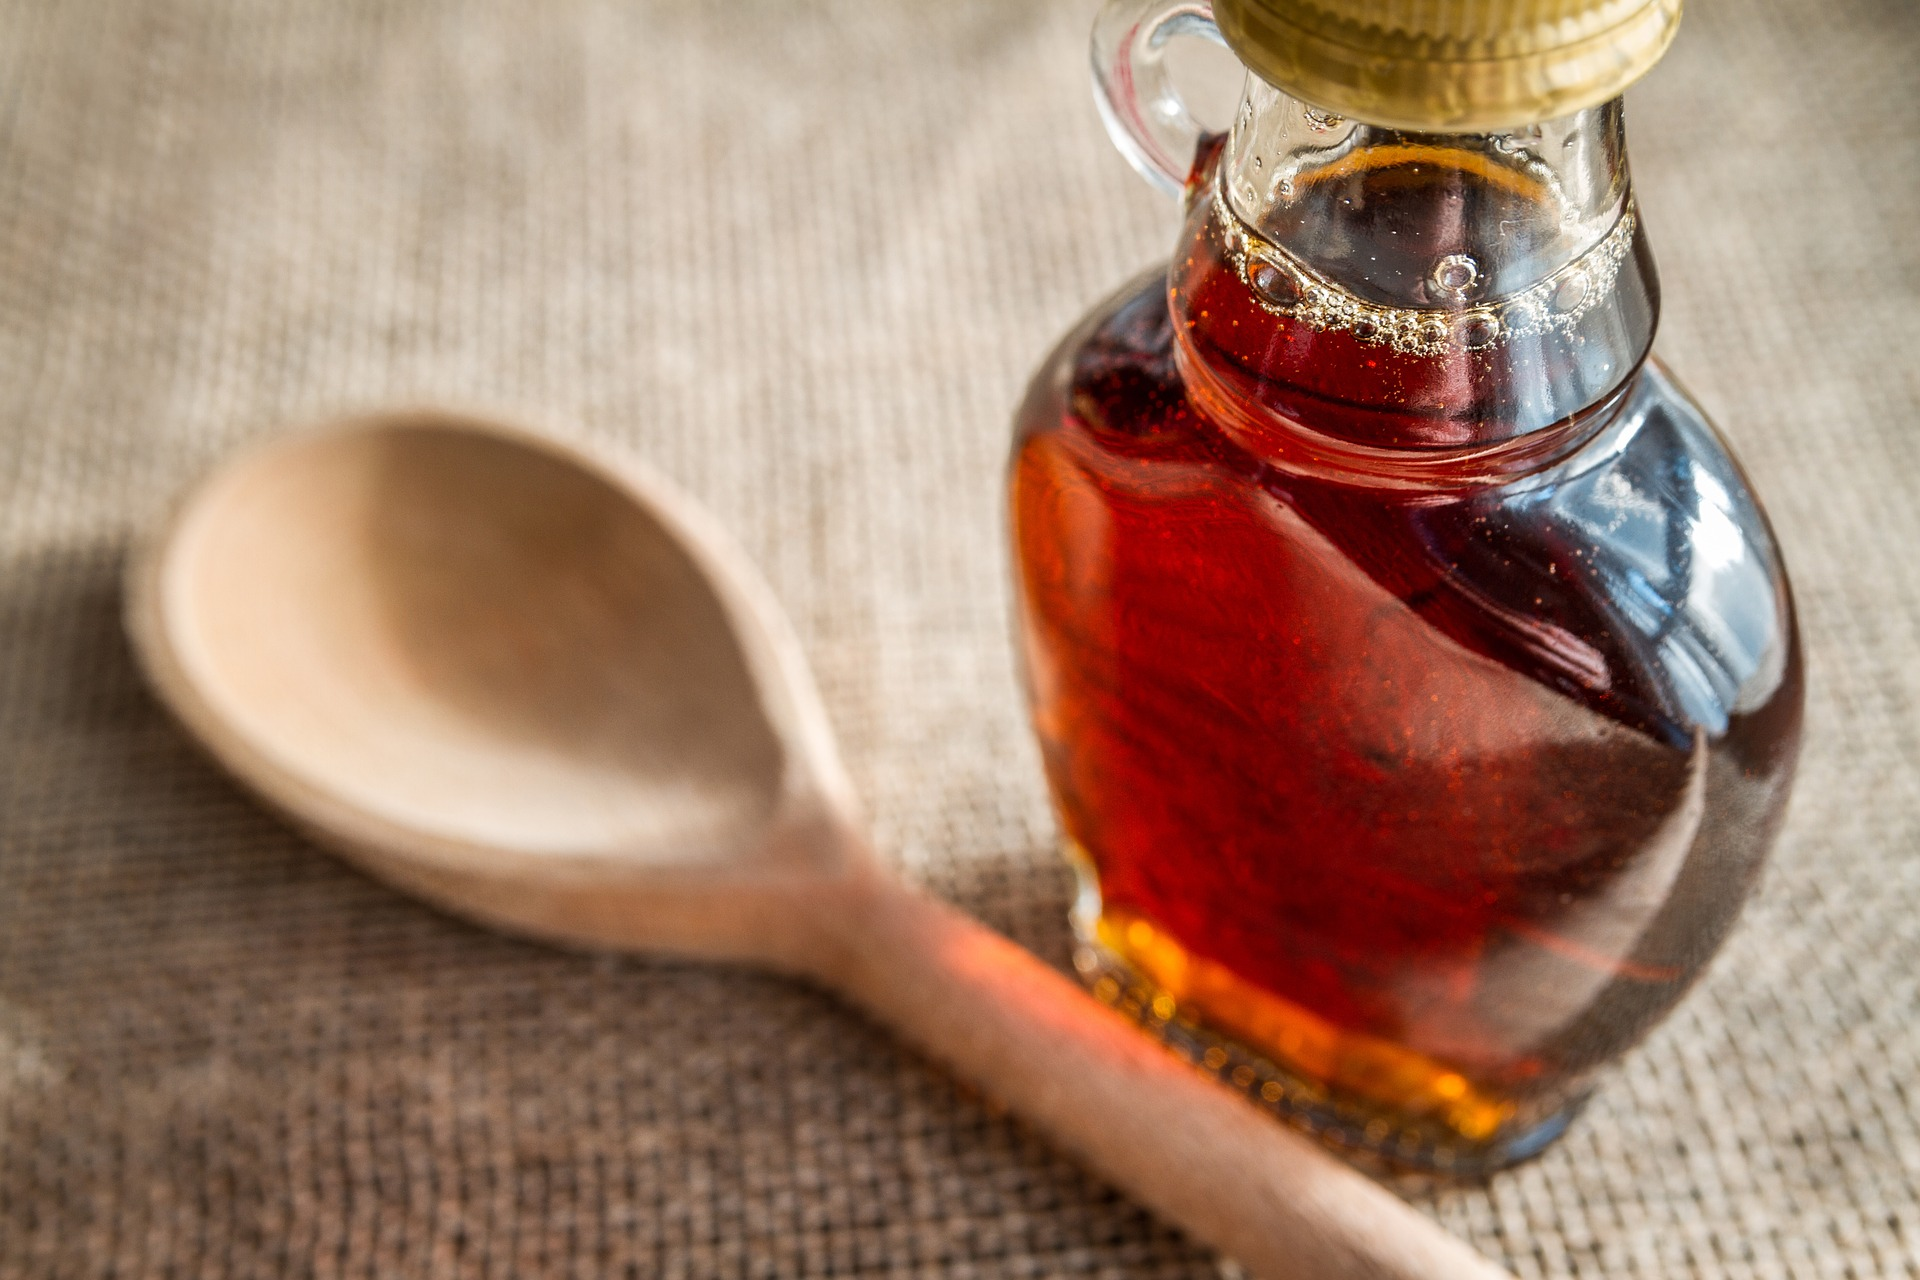 Bring home some delicious homemade maple syrup!